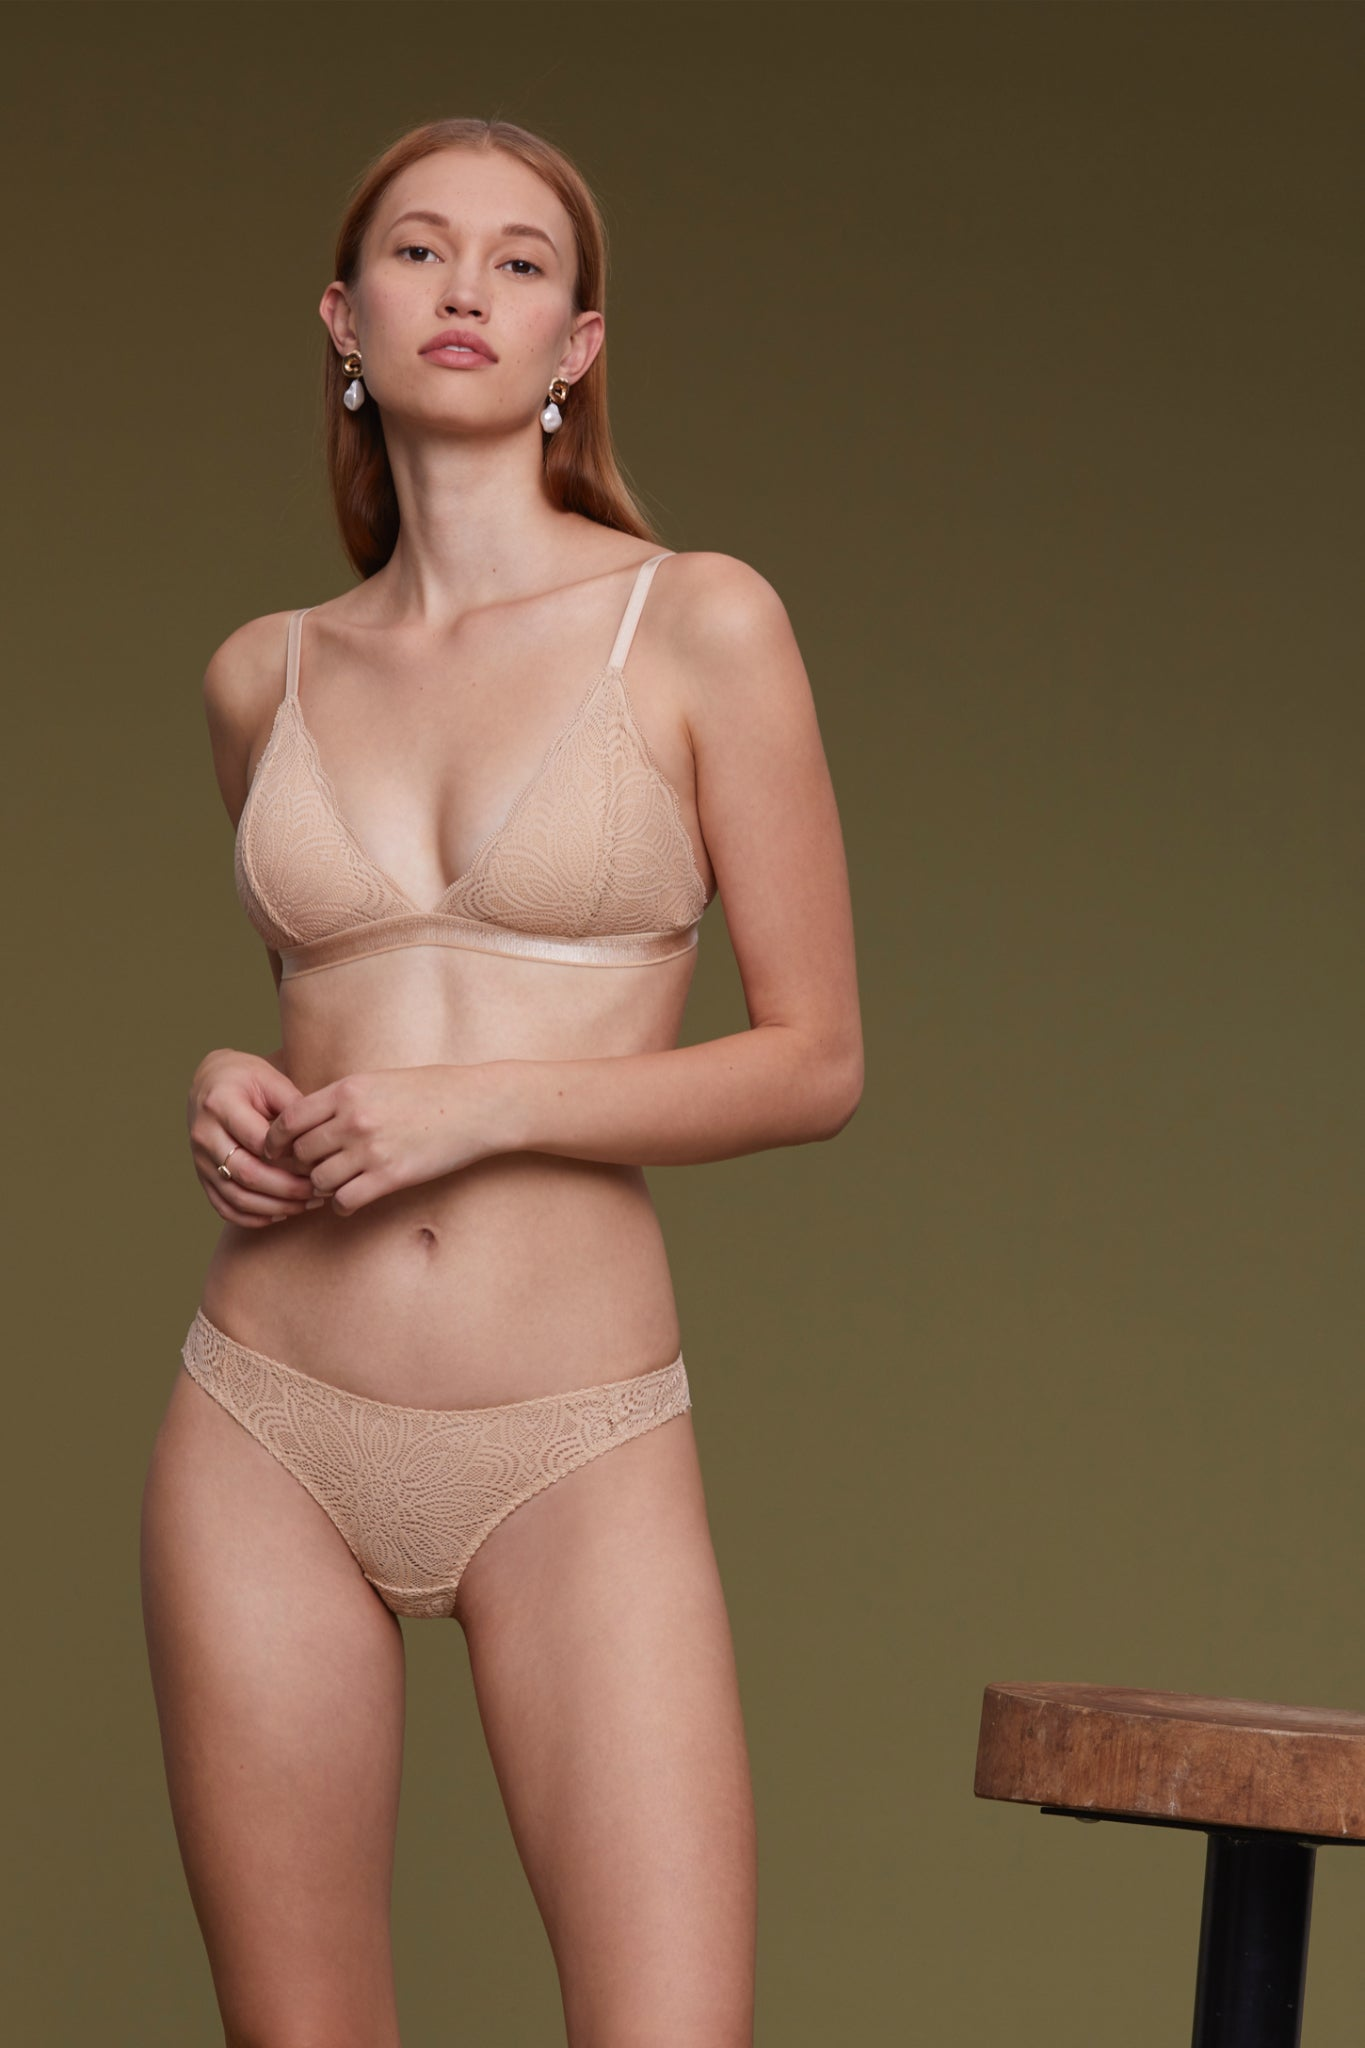 Under Protection - recreation.io